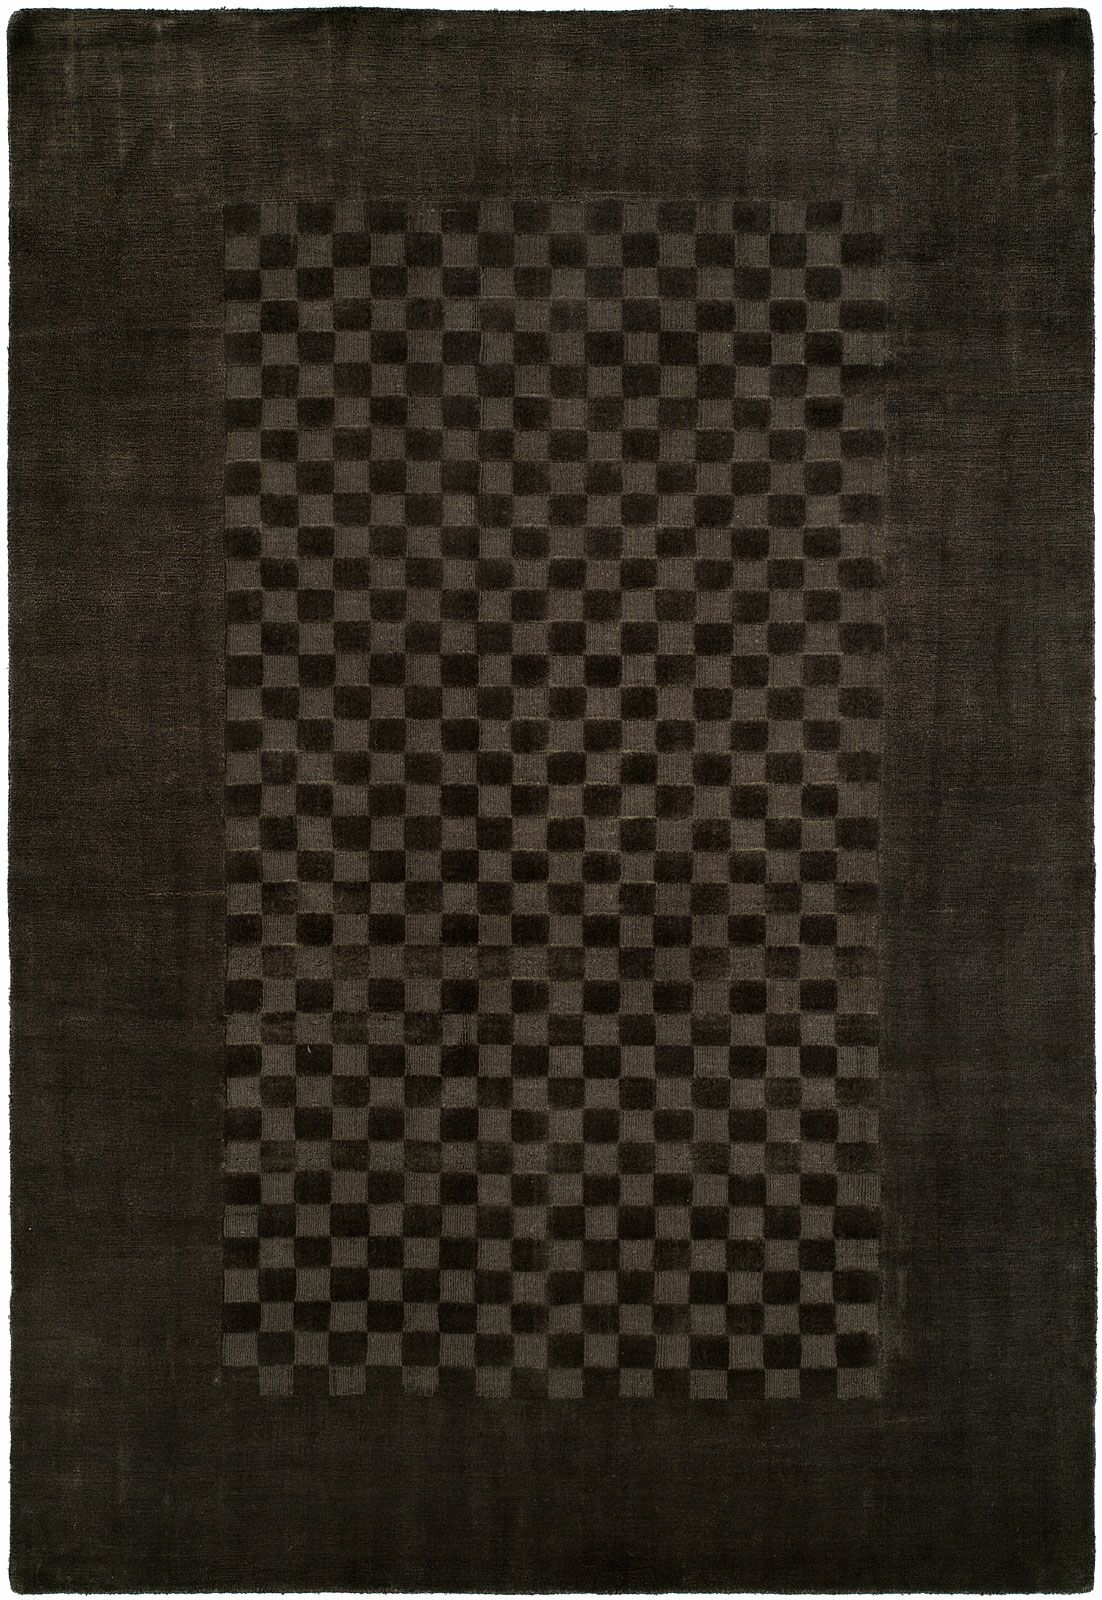 Beharry Hand-Woven Black/Gray Area Rug Rug Size: 3'6